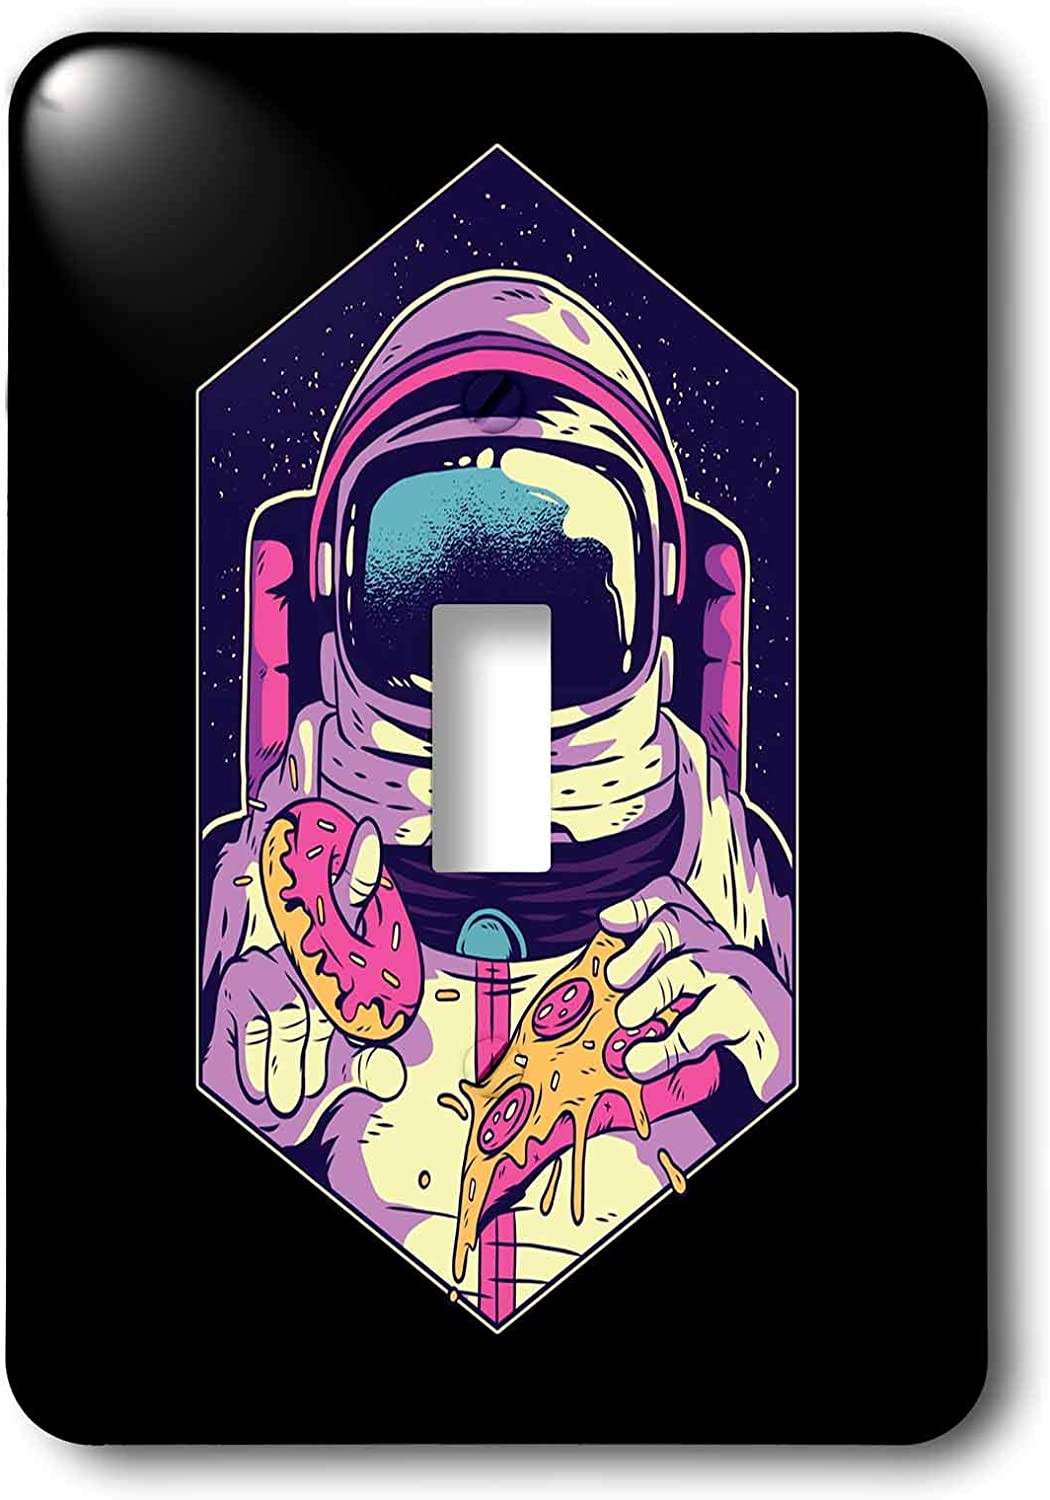 3dRose Sven Herkenrath Fantasy - Illustration Design with Astronaut and Pizza Food Sweet - single toggle switch (lsp_306912_1)